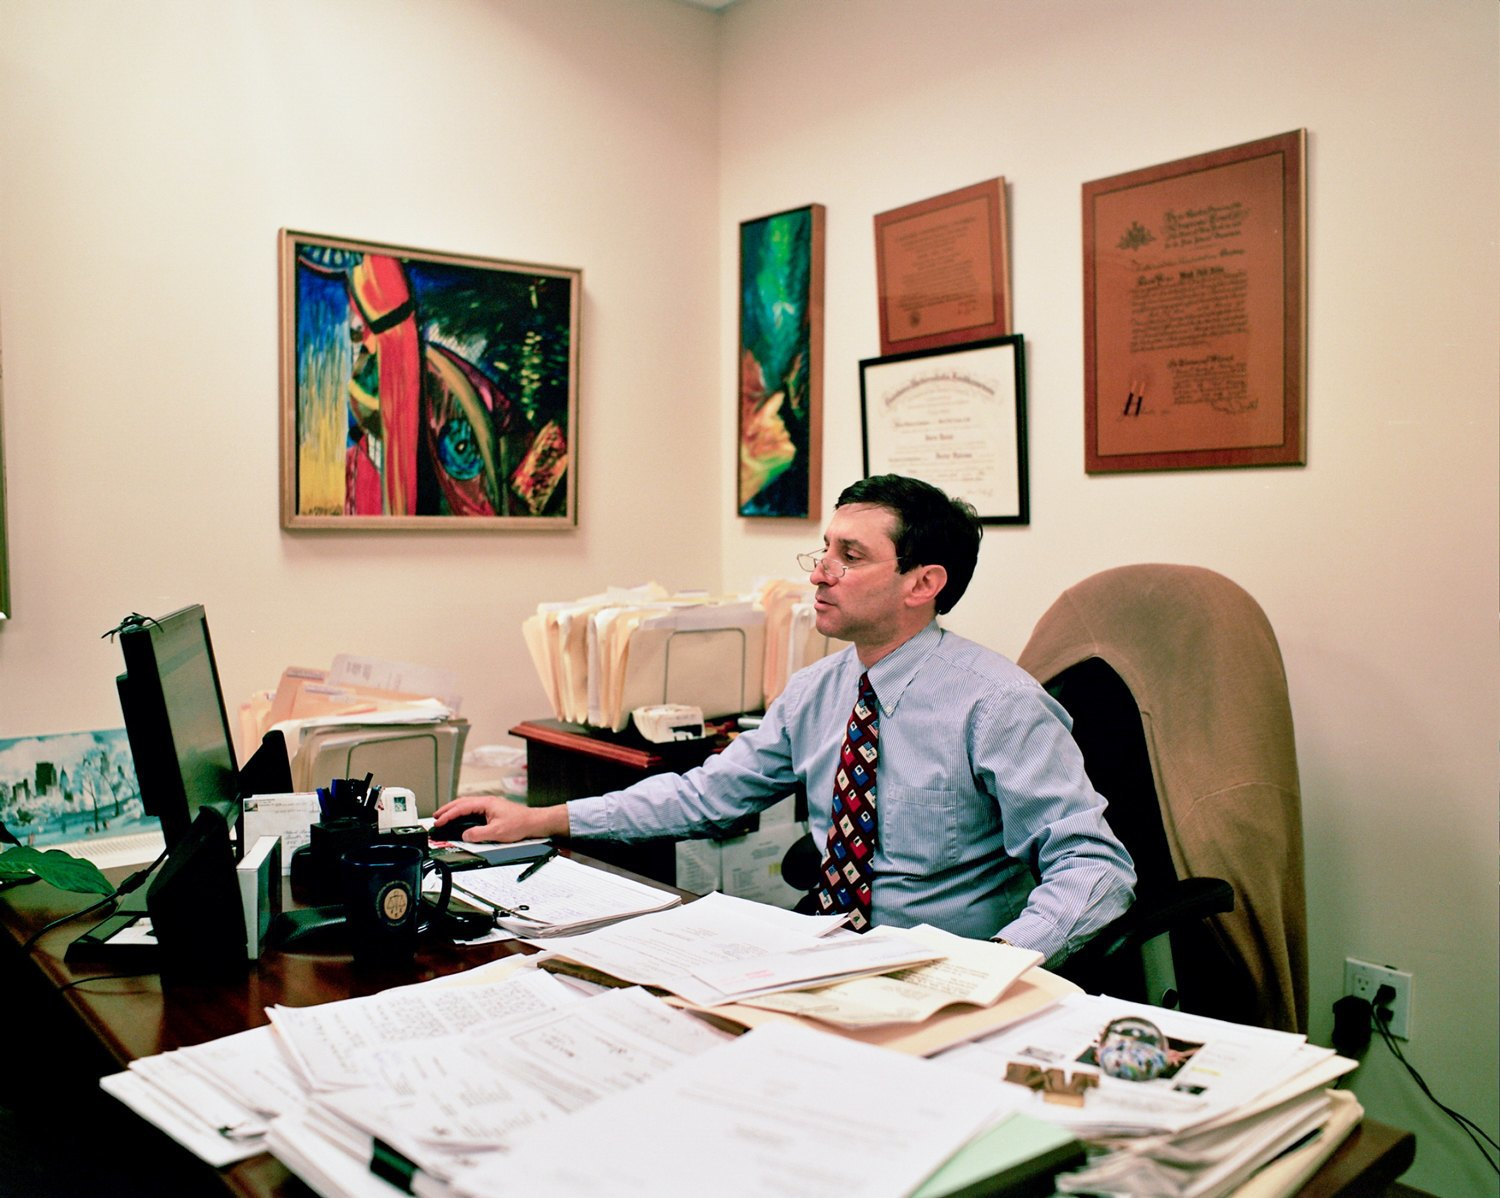 Battle for the ballots: inside the offices of U.S. third parties. Image 4.